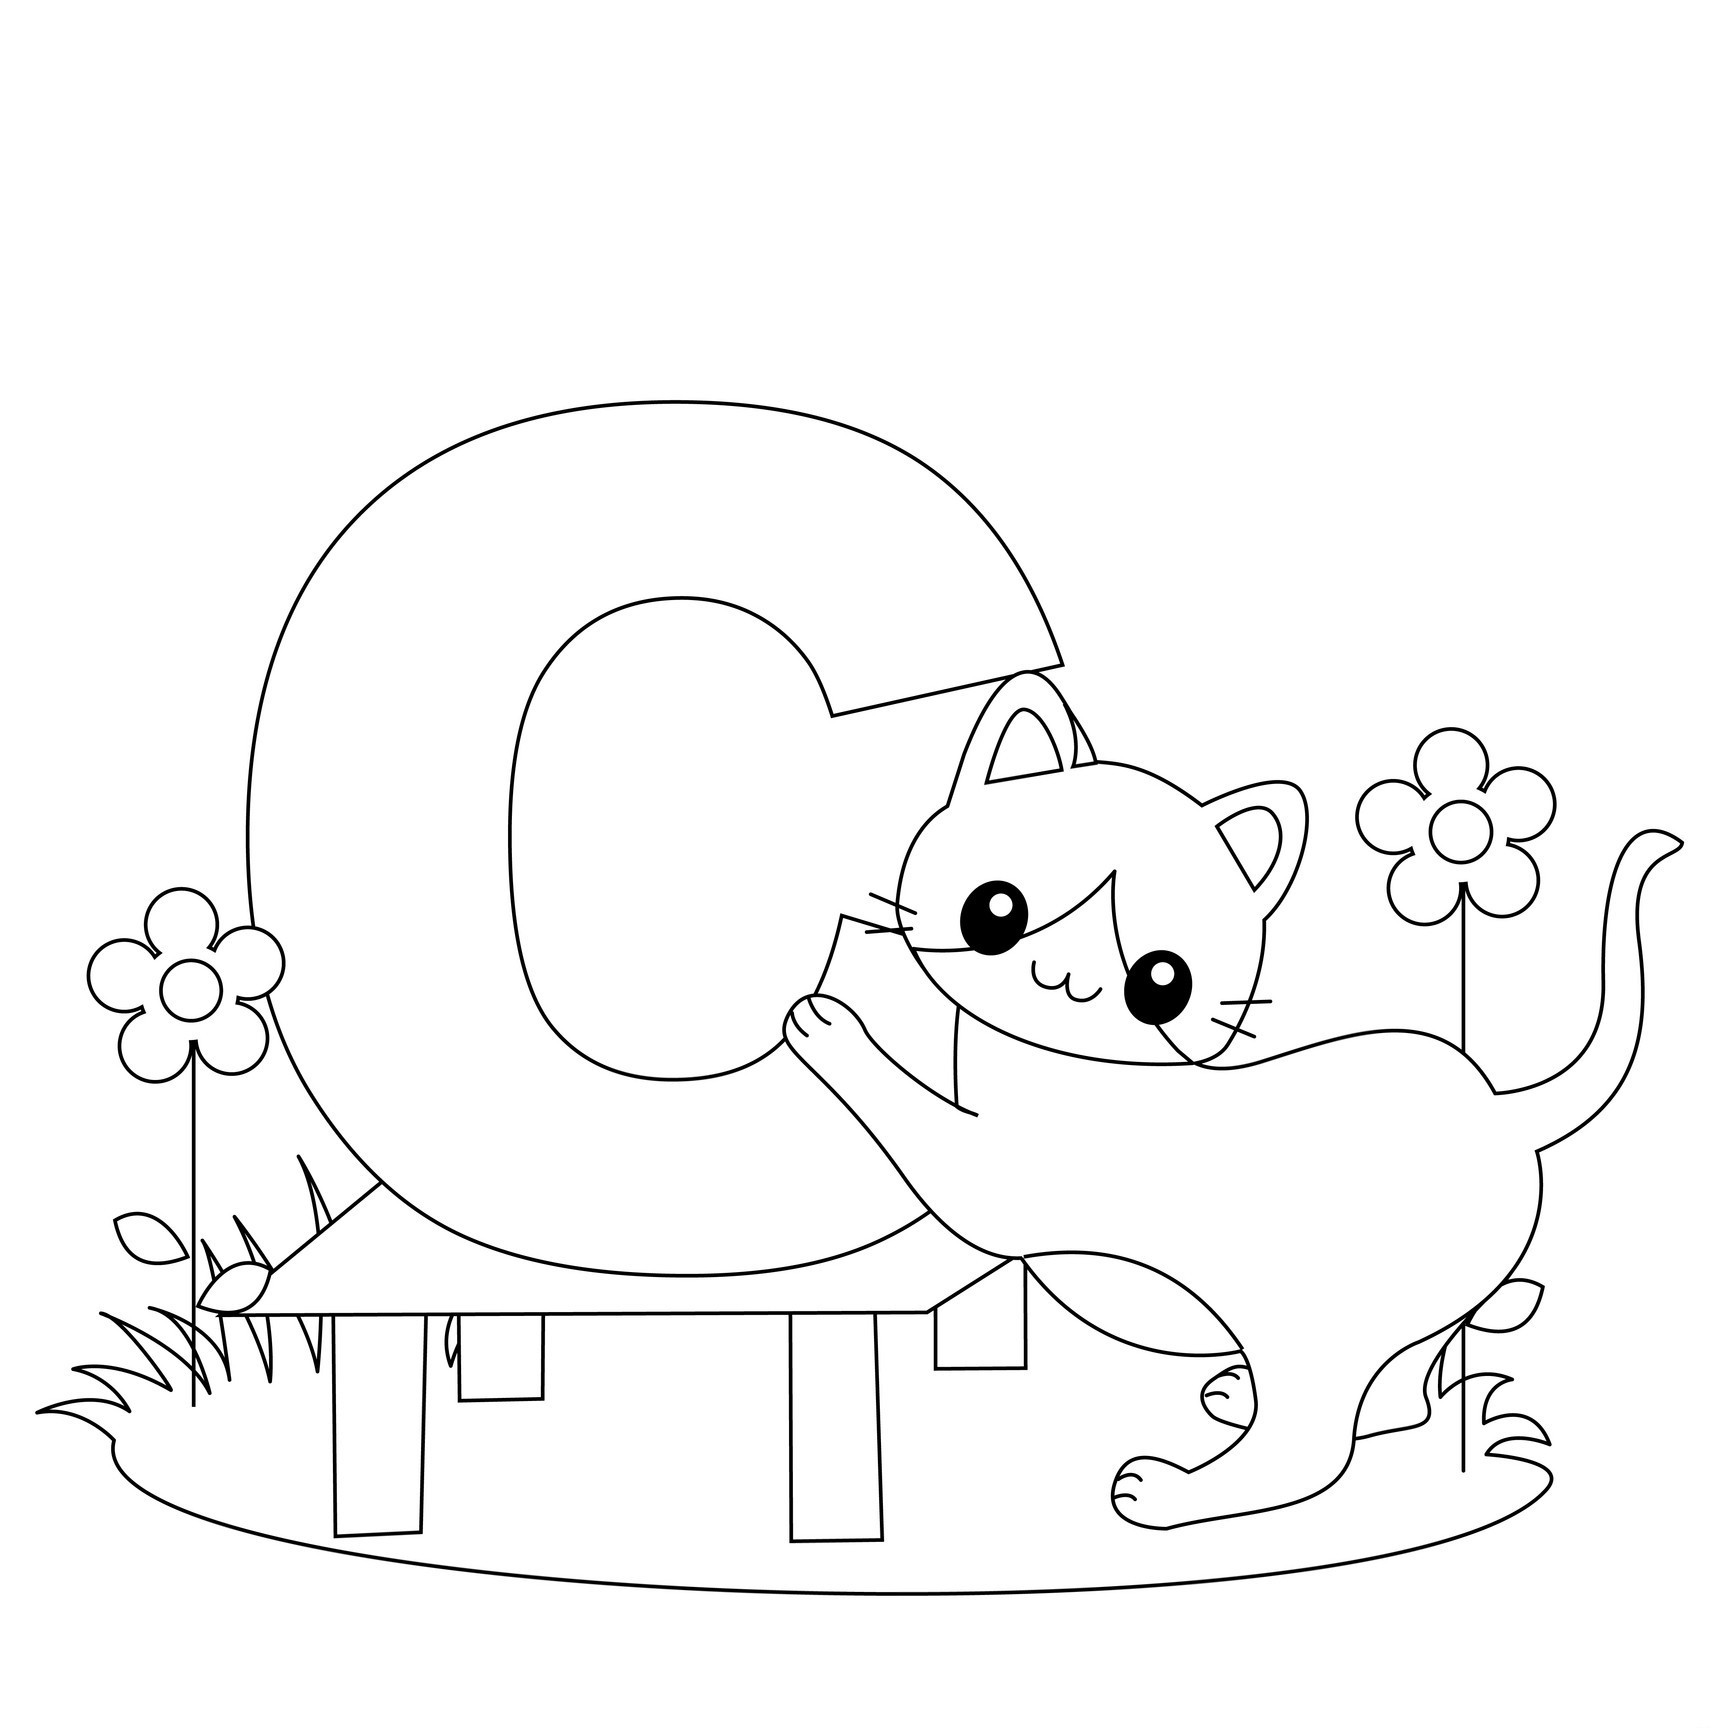 1732x1732 Coloring Pages The Alphabet Fresh Free Printable Alphabet Coloring